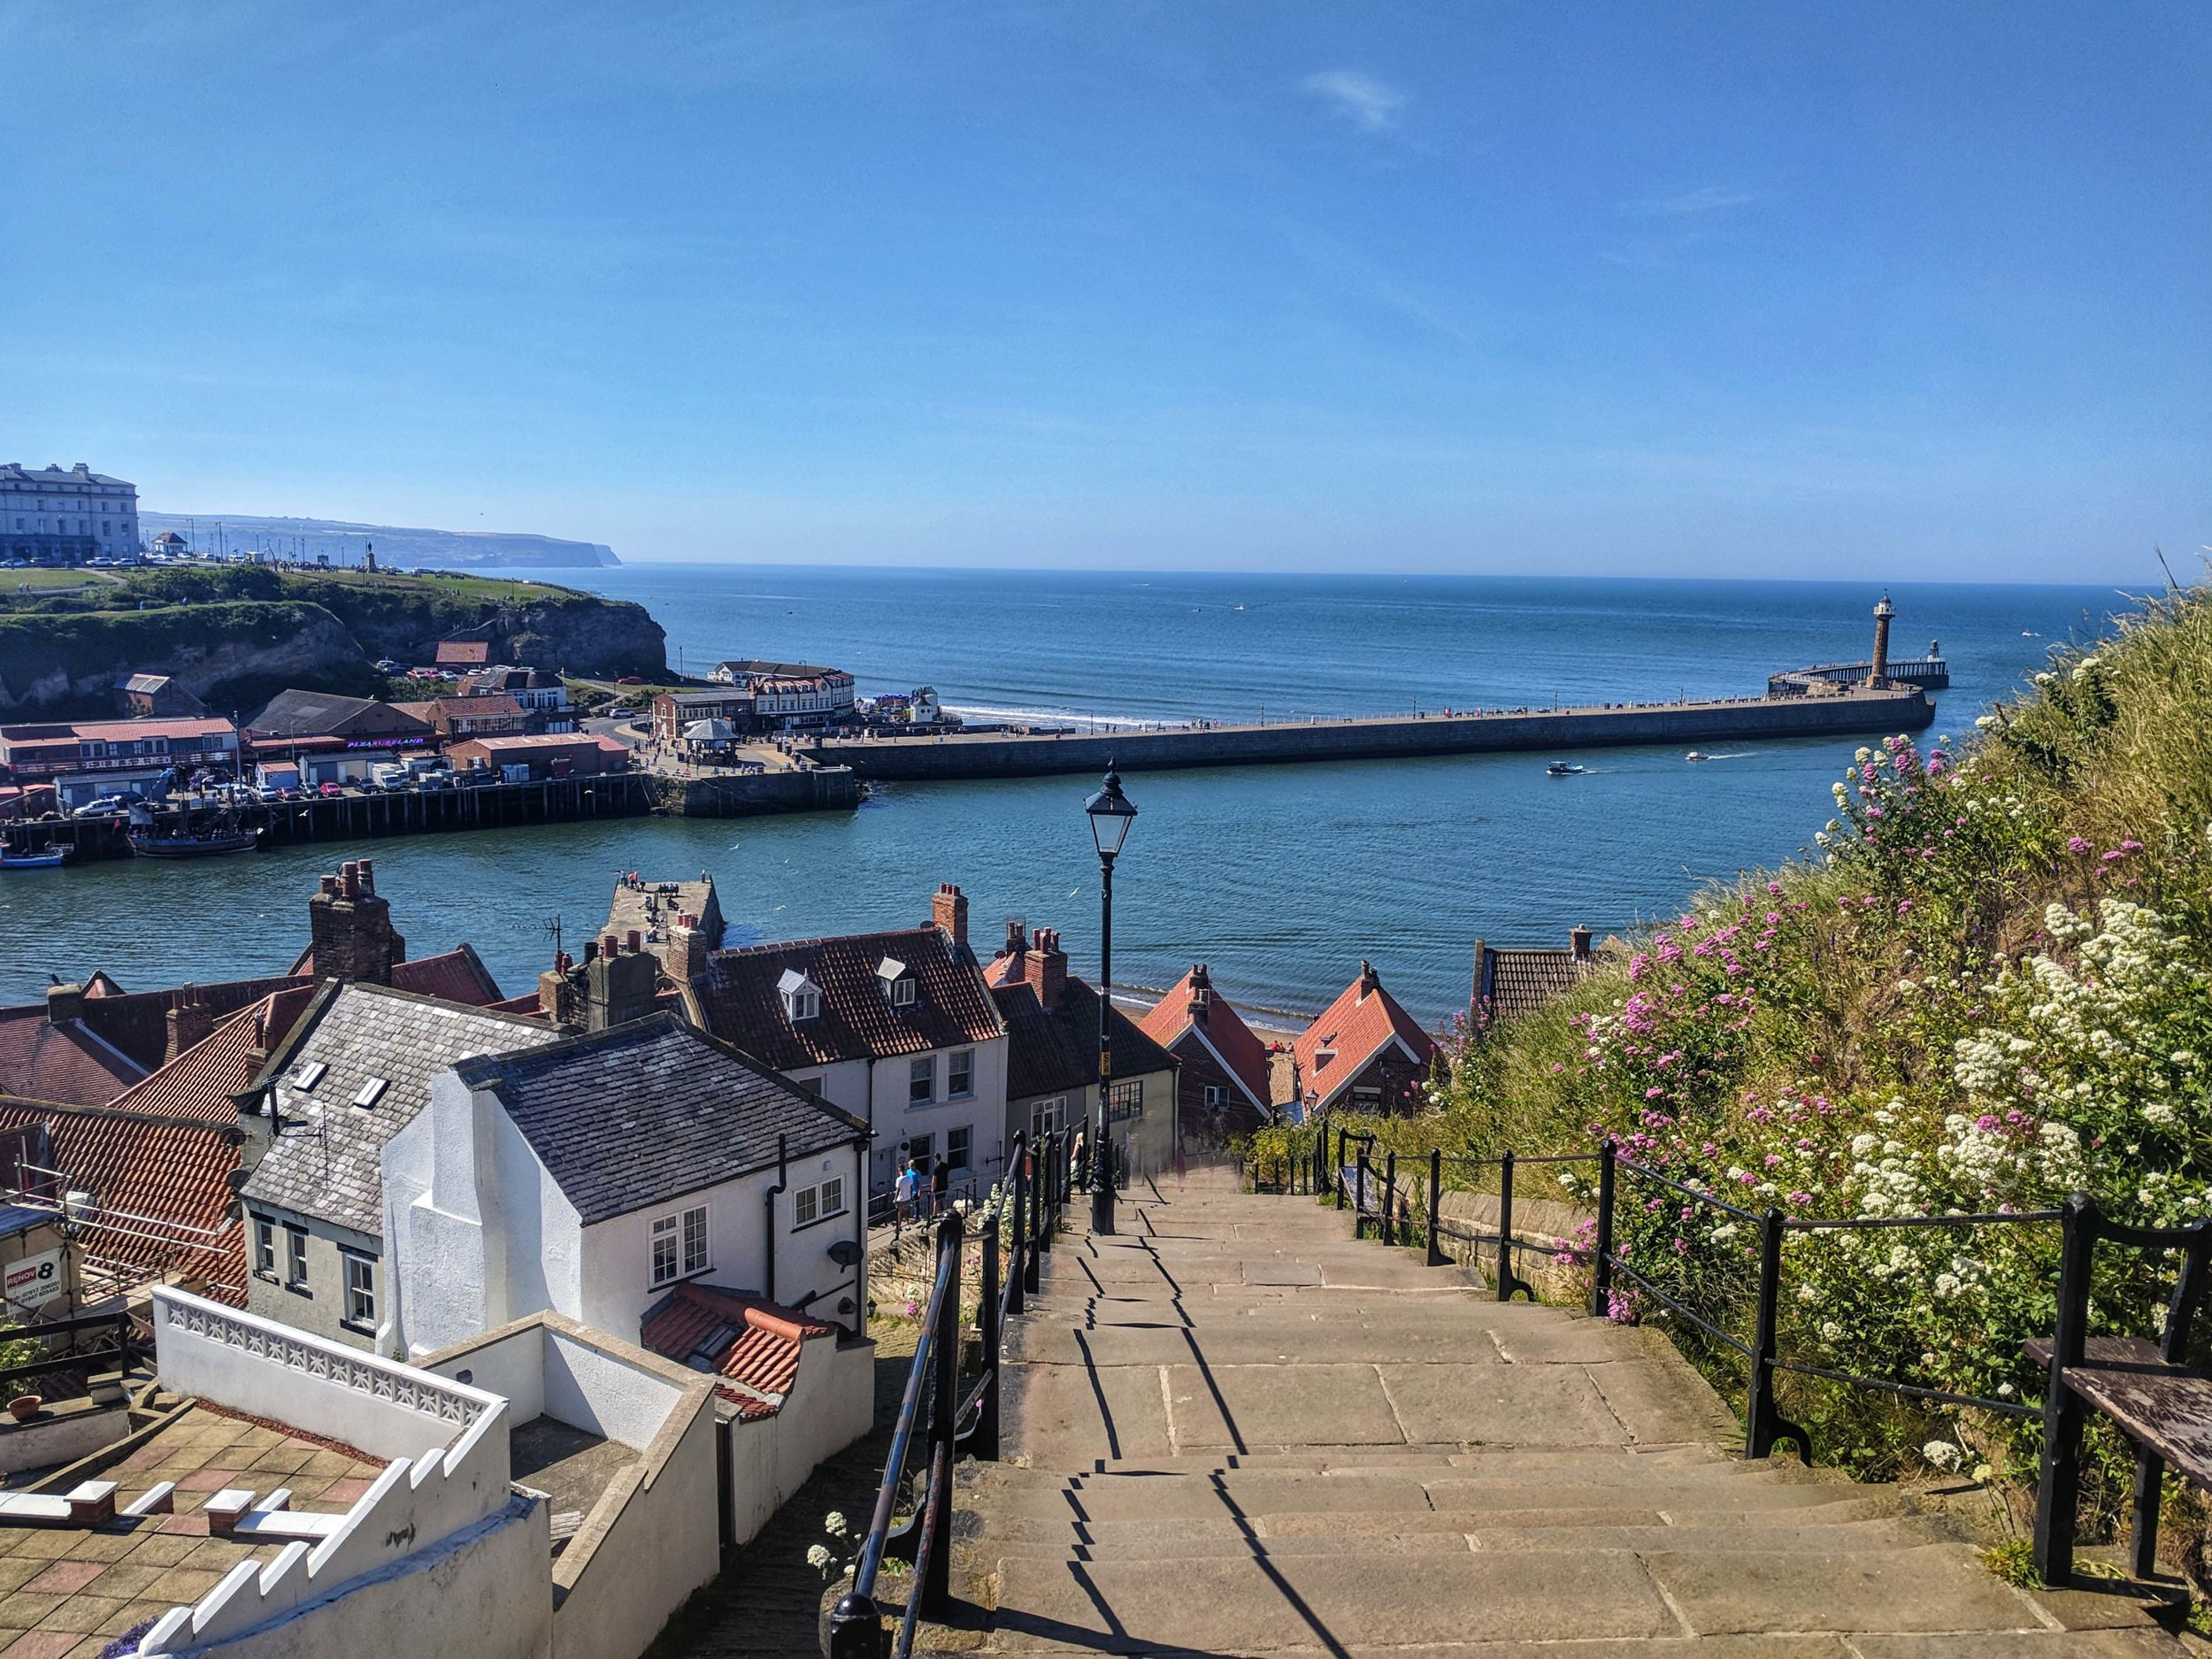 More photogenic Whitby